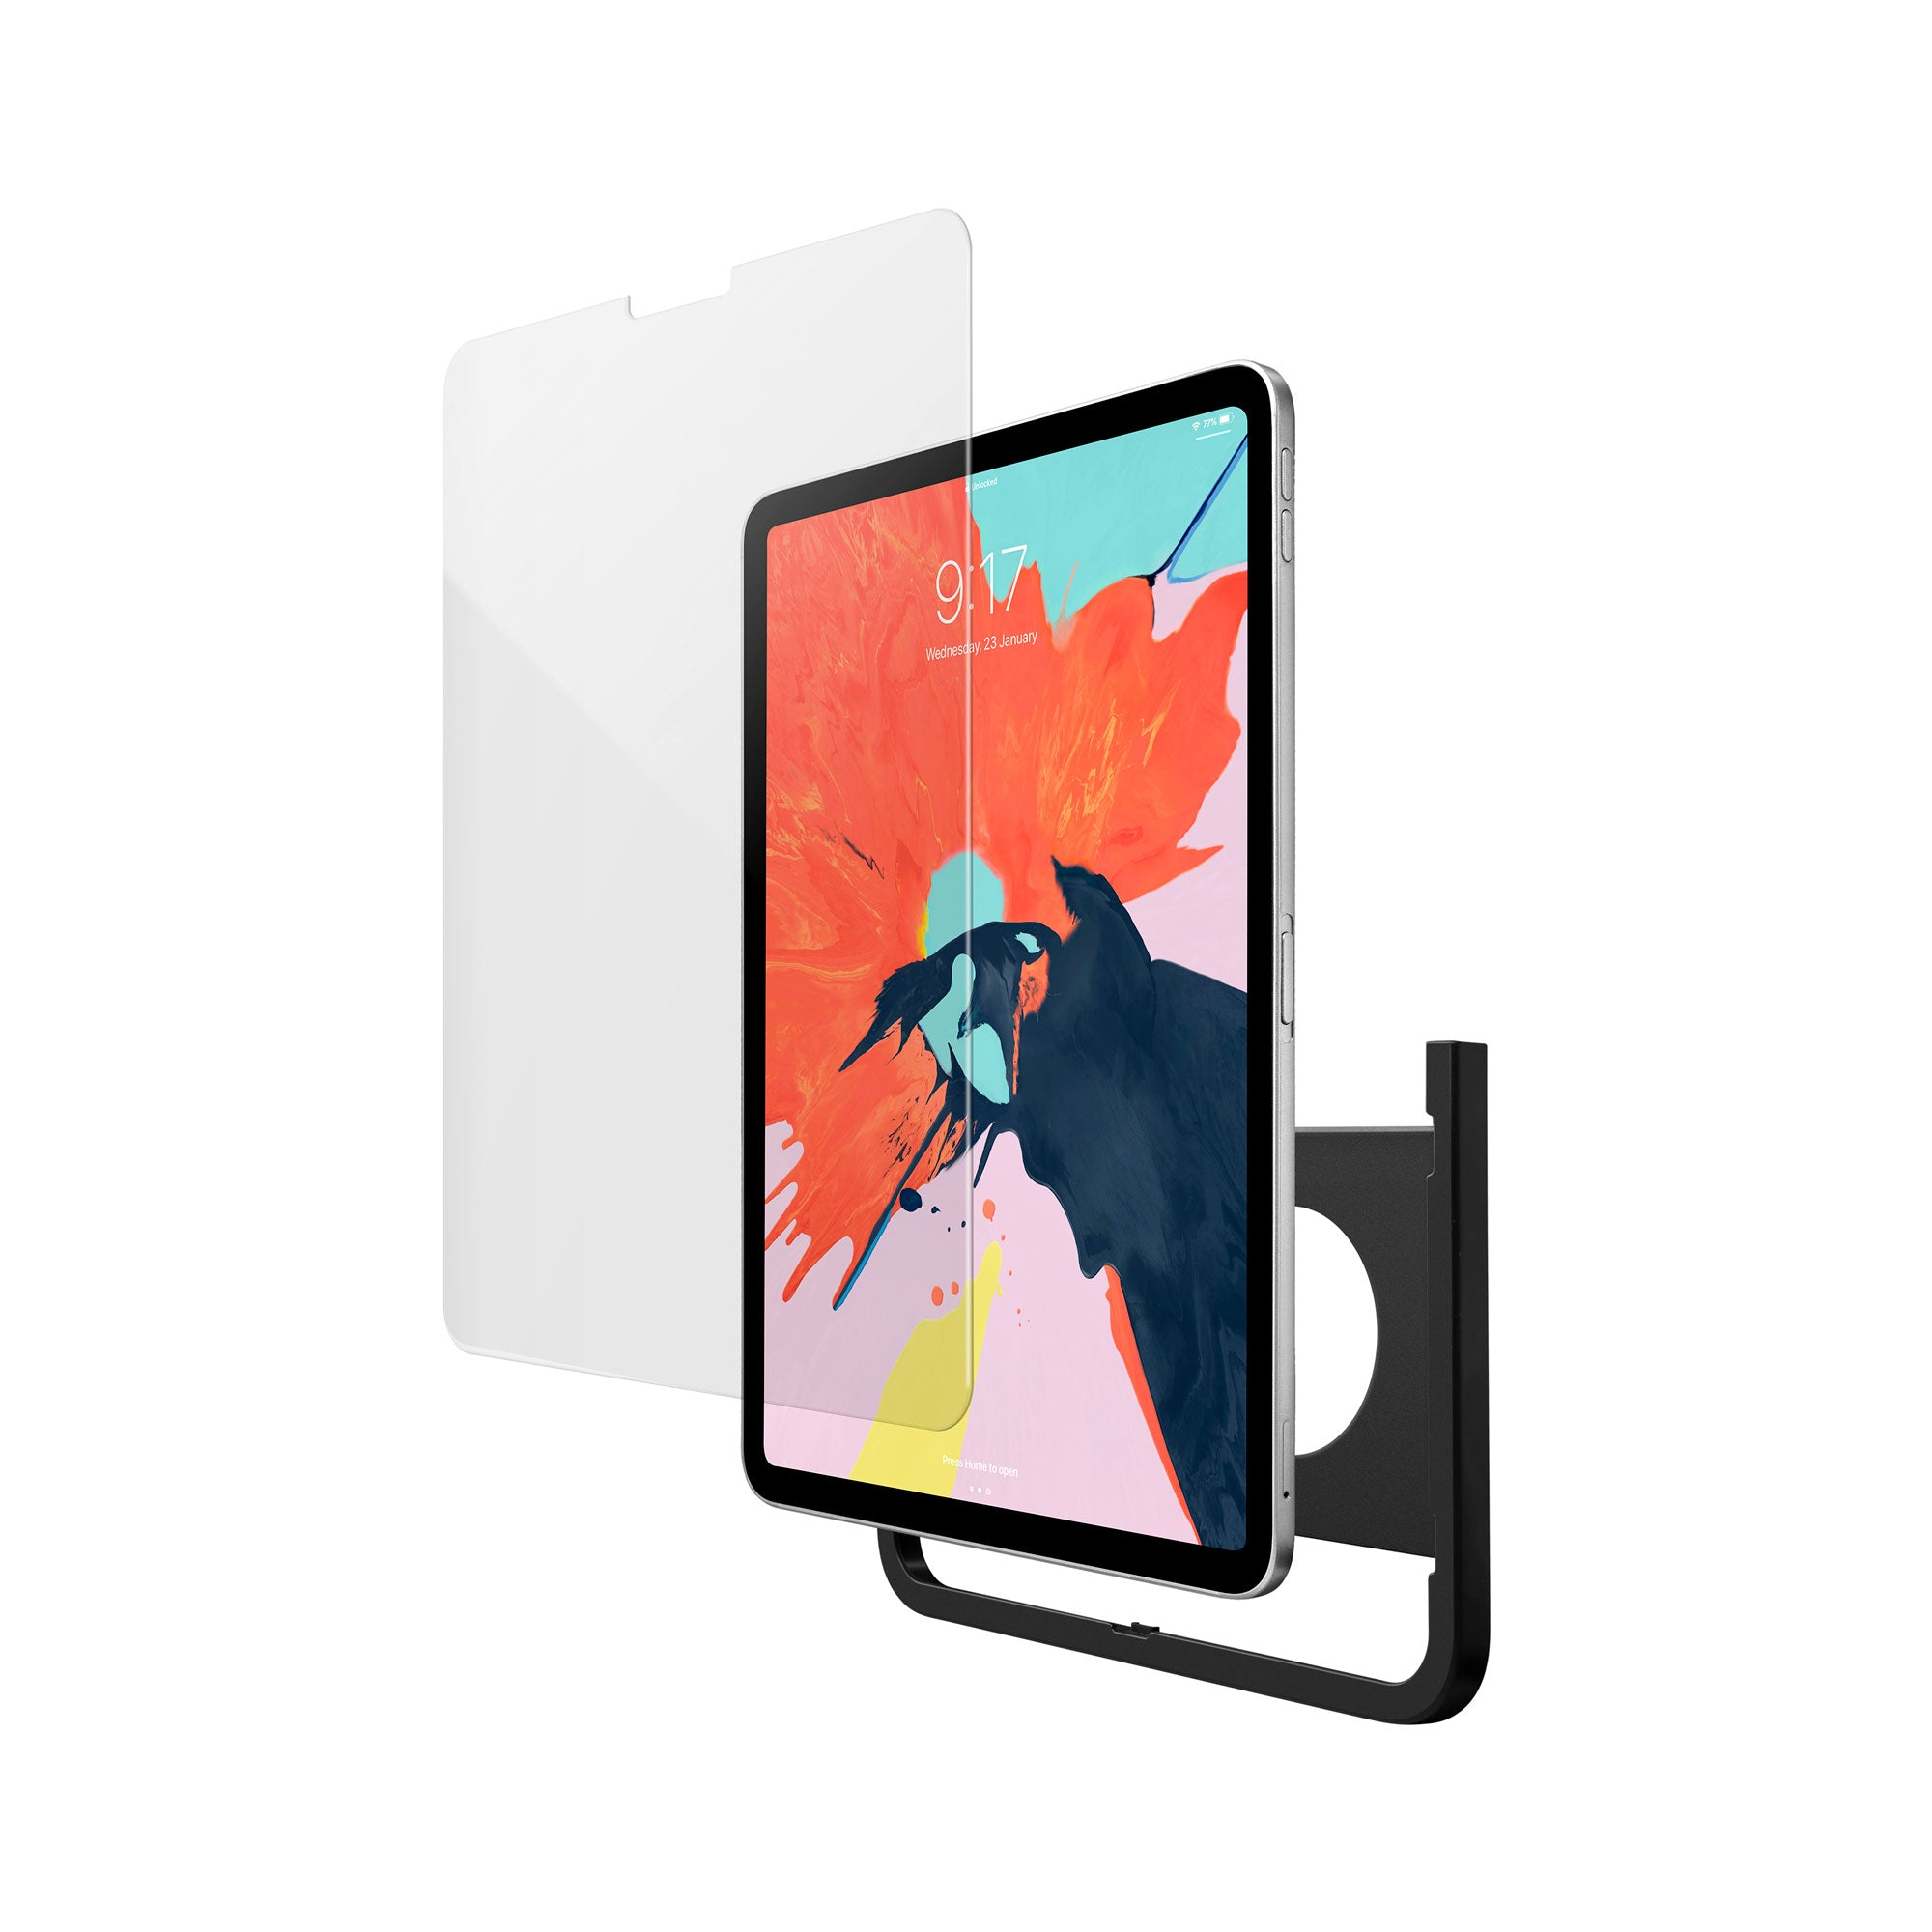 LAUT-PRIME Glass for iPad Pro 12.9-inch (Late 2018)-Screen Protector-iPad Pro 12.9-inch (Late 2018)